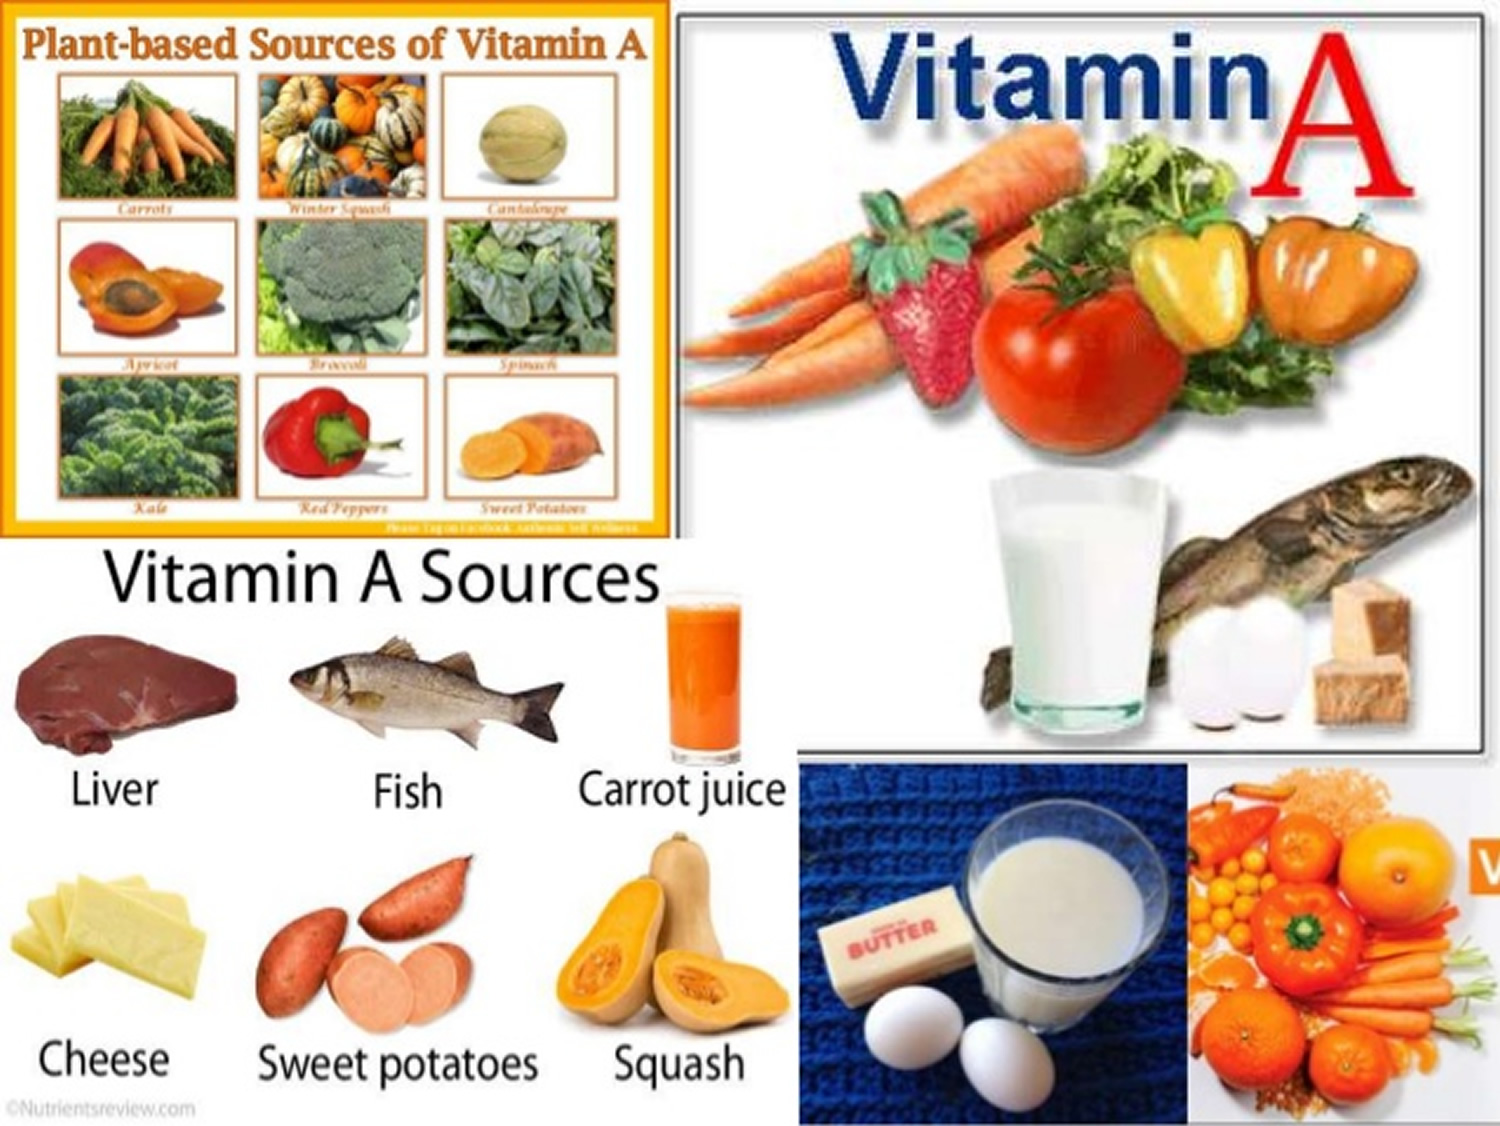 Foods with vit a